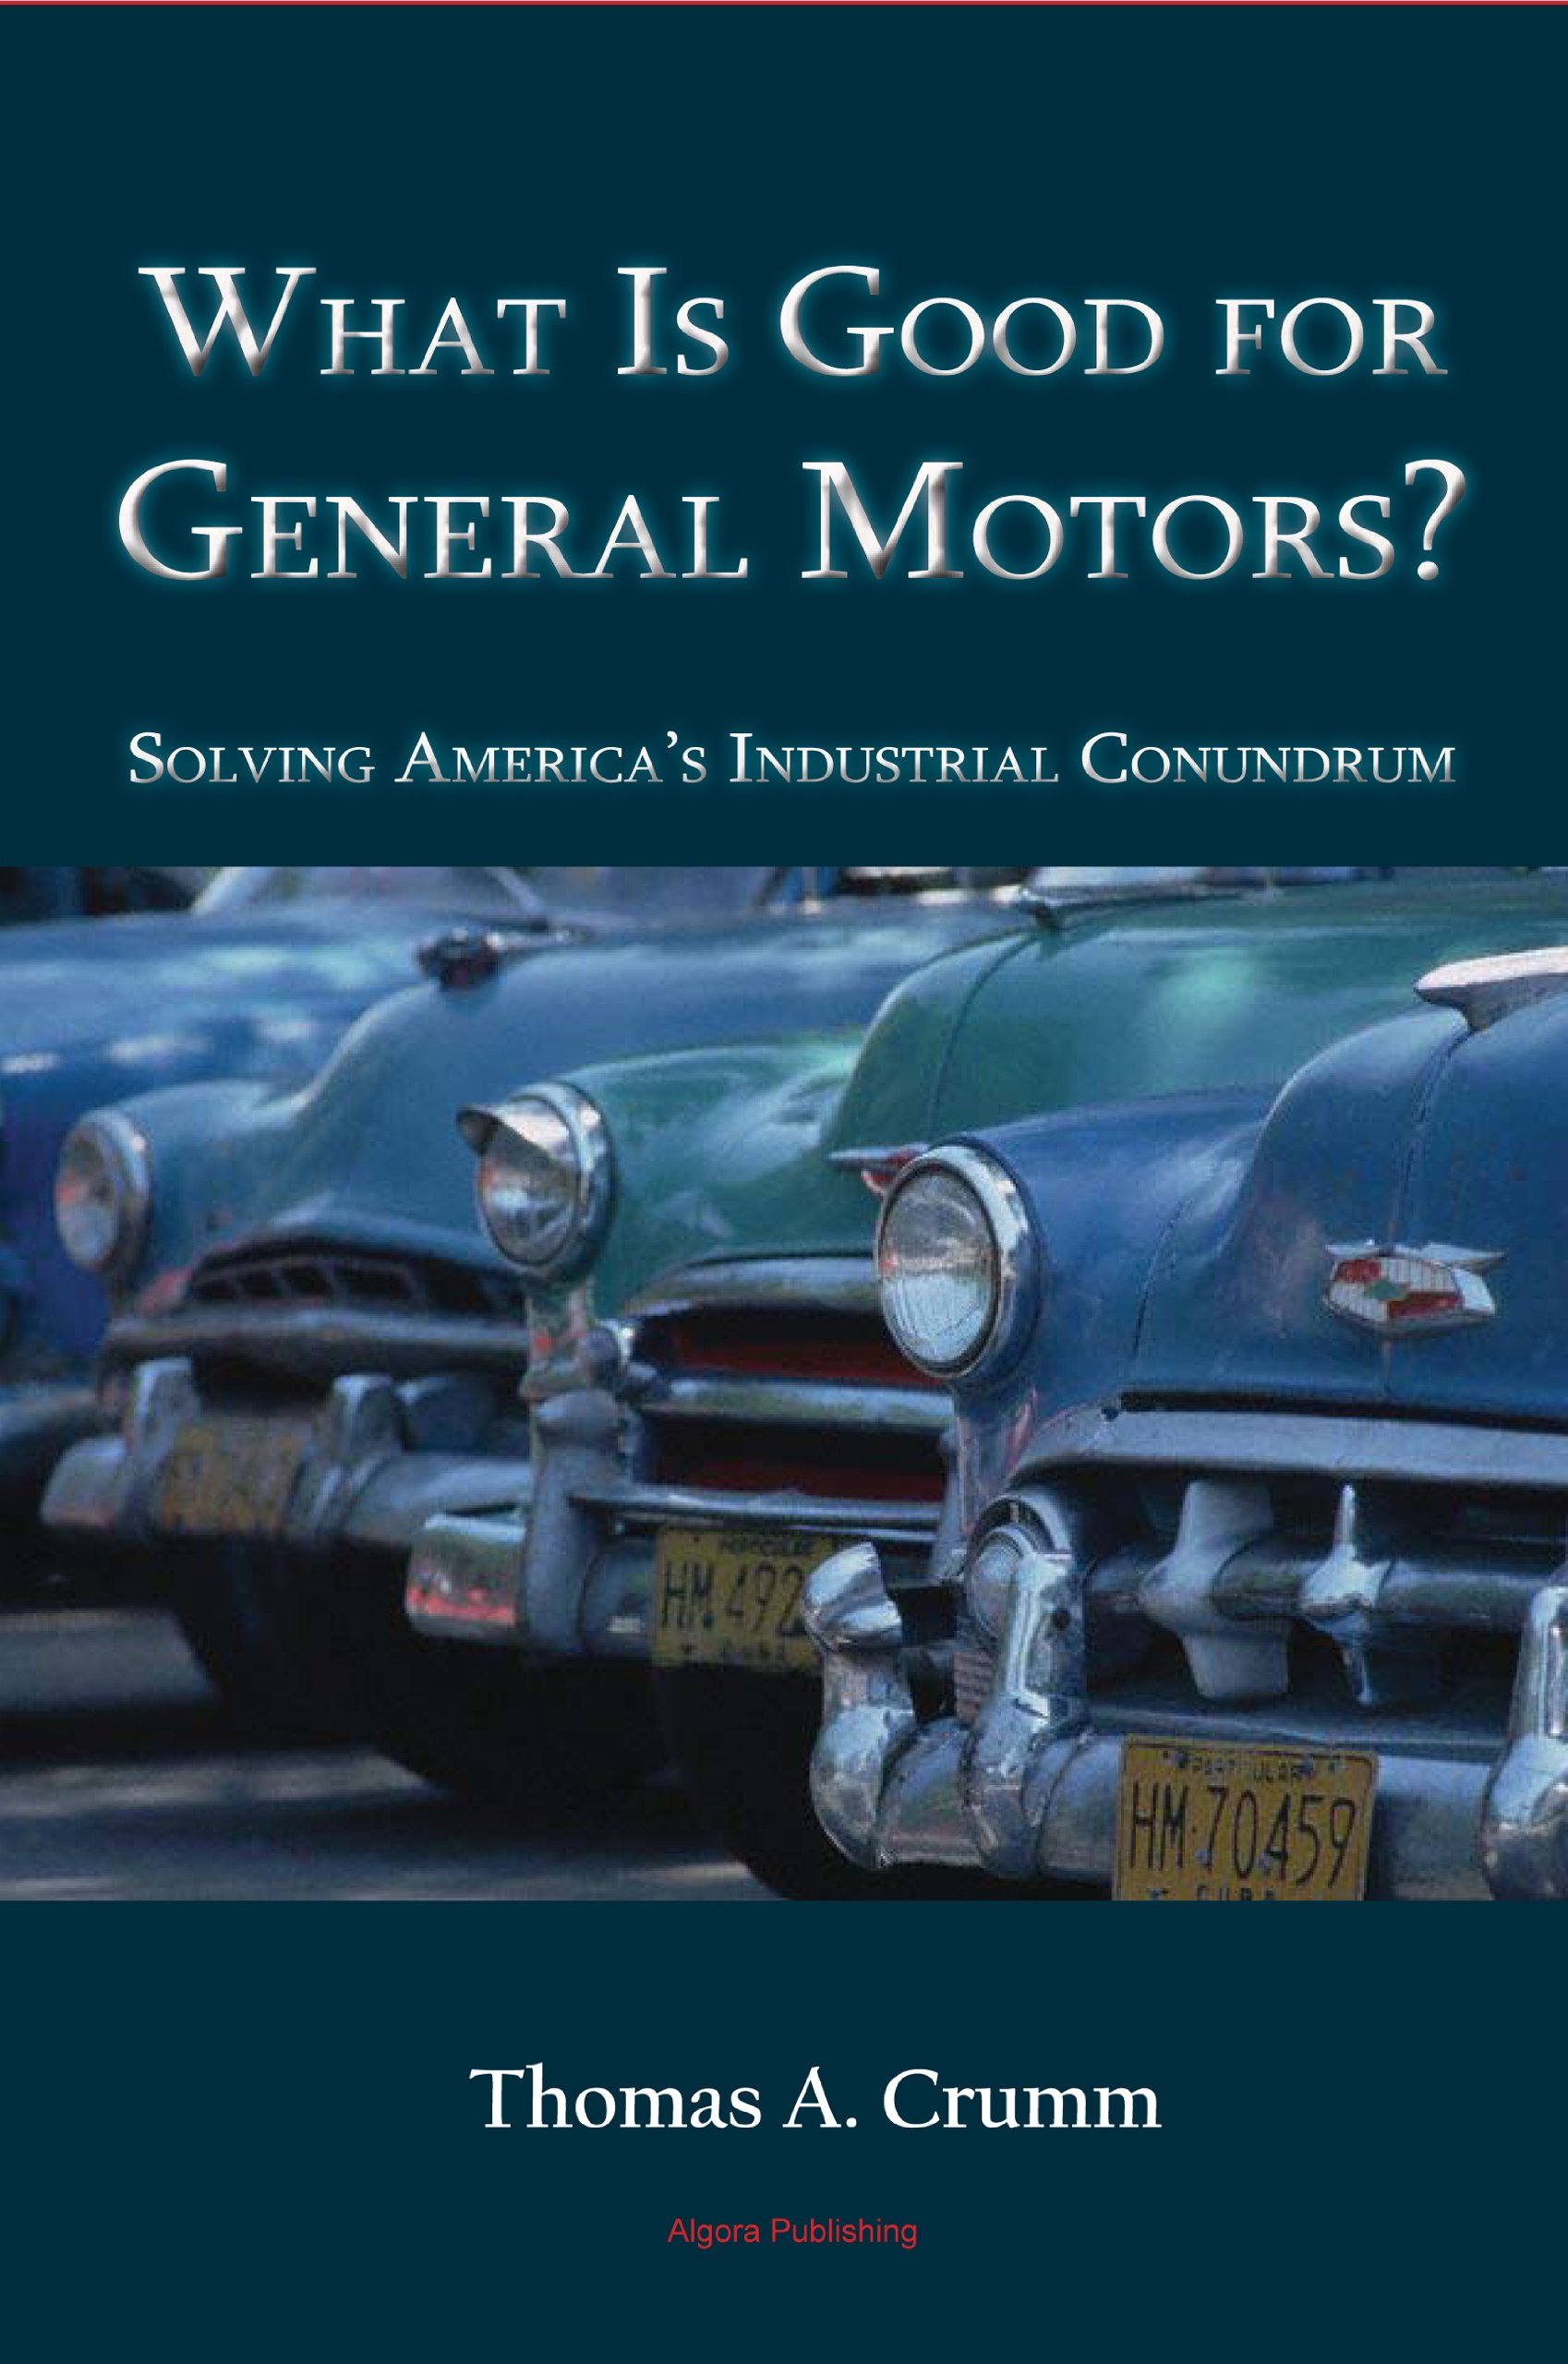 What Is Good For General Motors?: Solving America's Industrial Conundrum:  Thomas Crumm: 9780875867786: Amazon: Books